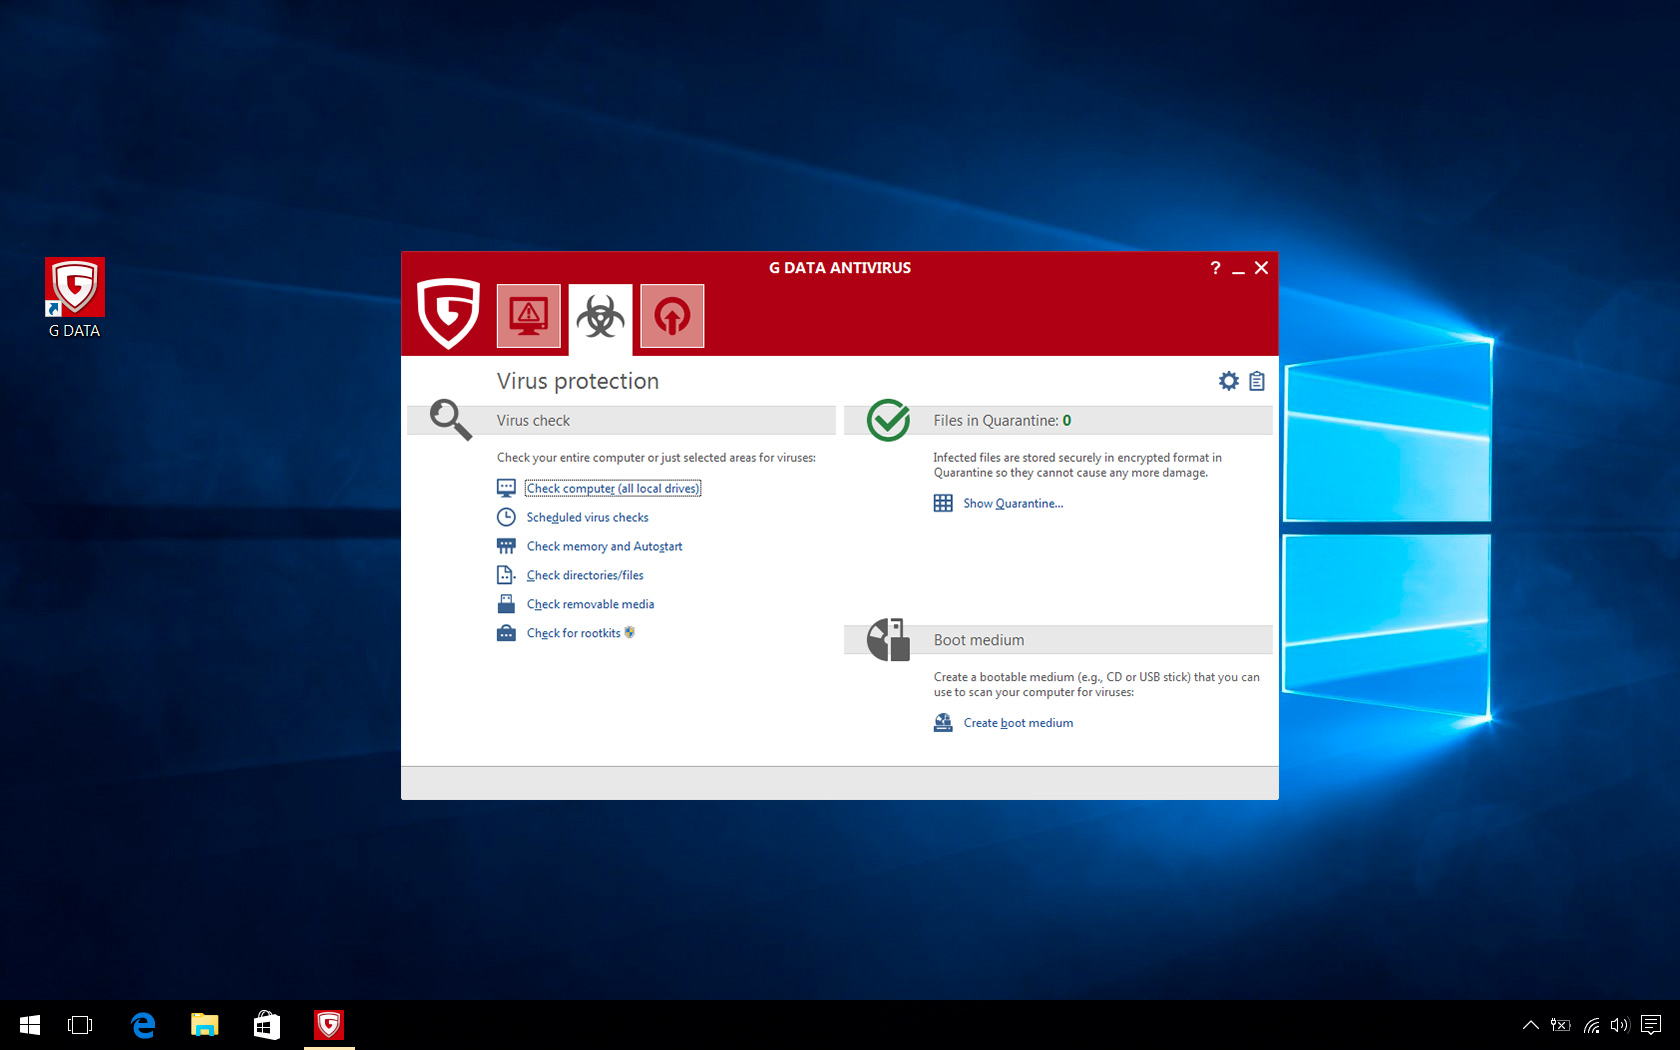 G_DATA_Antivirus_Screenshot_VirusProtection_EN